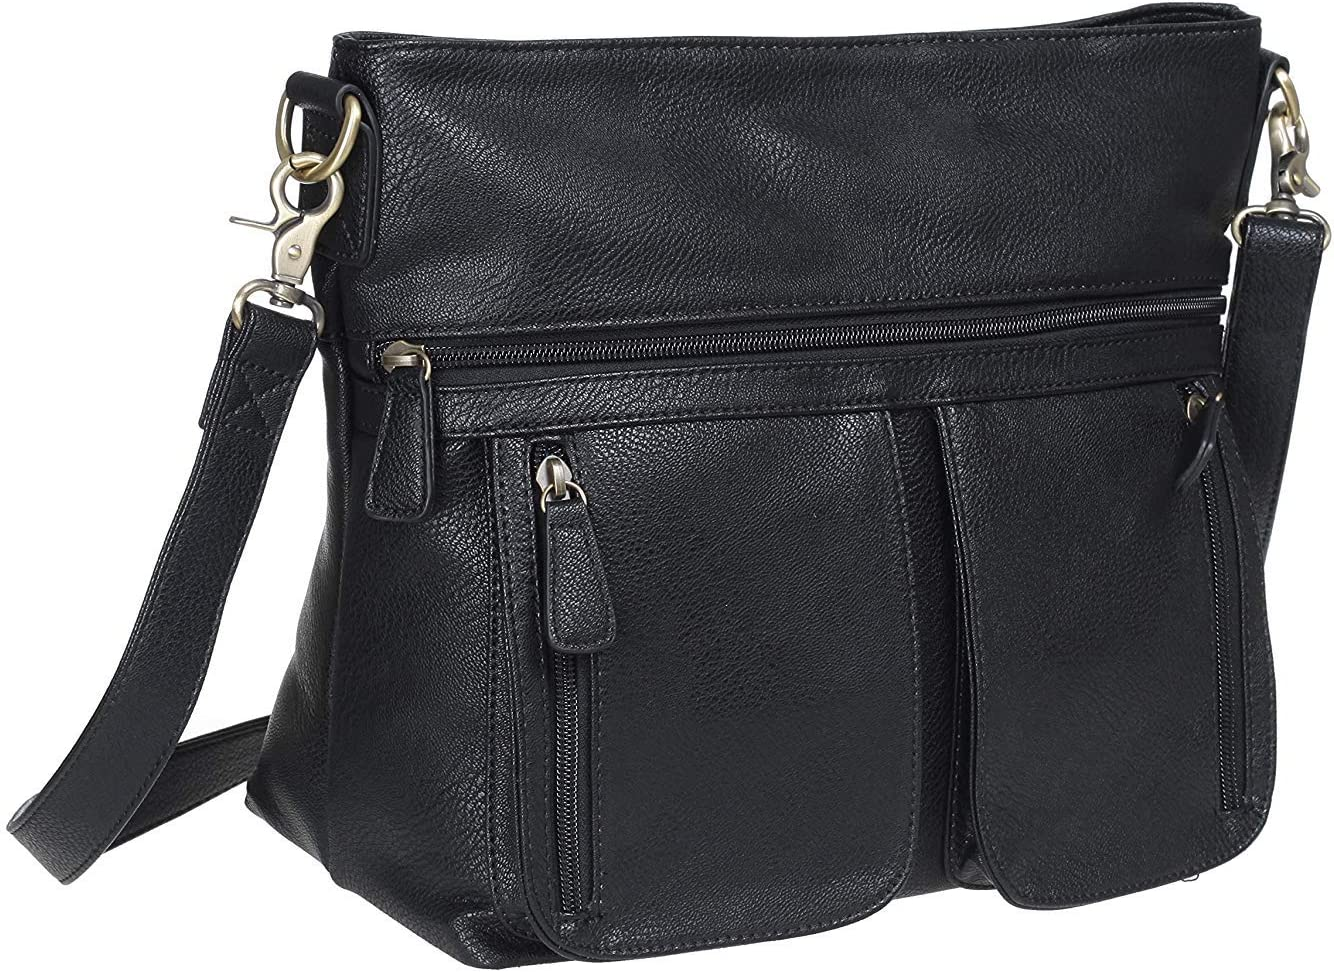 Allison Camera Bag with Dual Front Pouches (Black), black, Size No Size